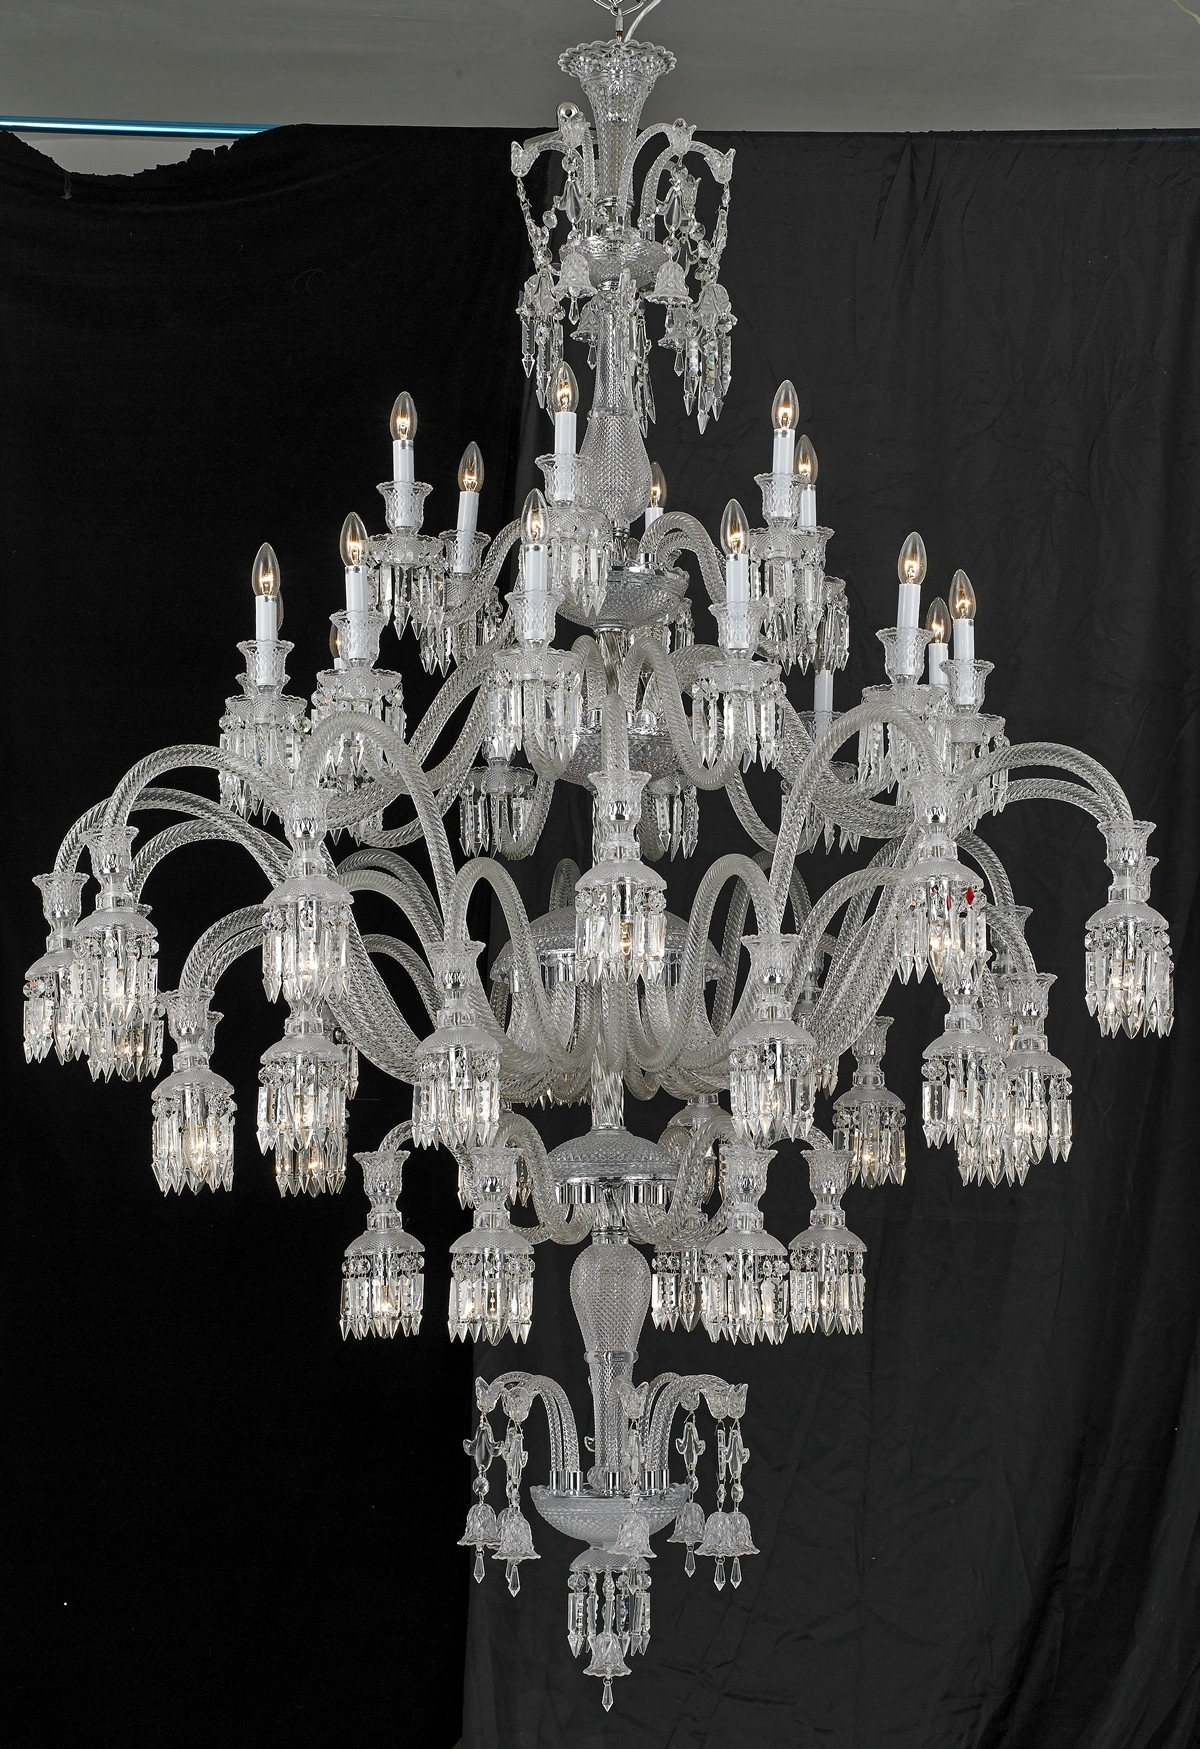 Sol 48 Light Baccarat Inspired Chandelier With Regard To Murano Chandelier Replica (Image 13 of 15)